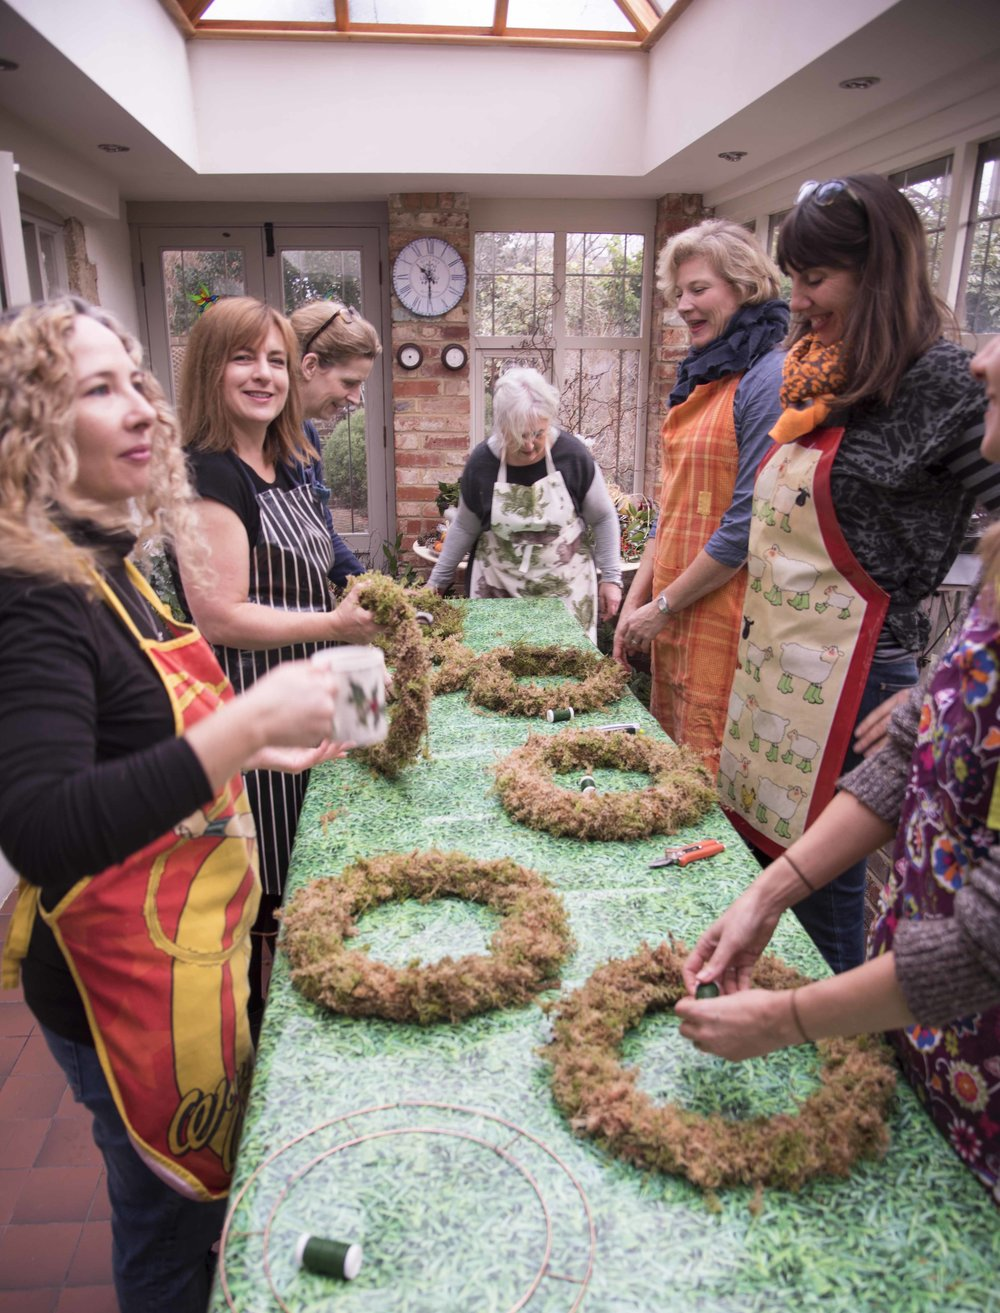 Copy of Wreath making workshop run by Darling Buds of Sussex